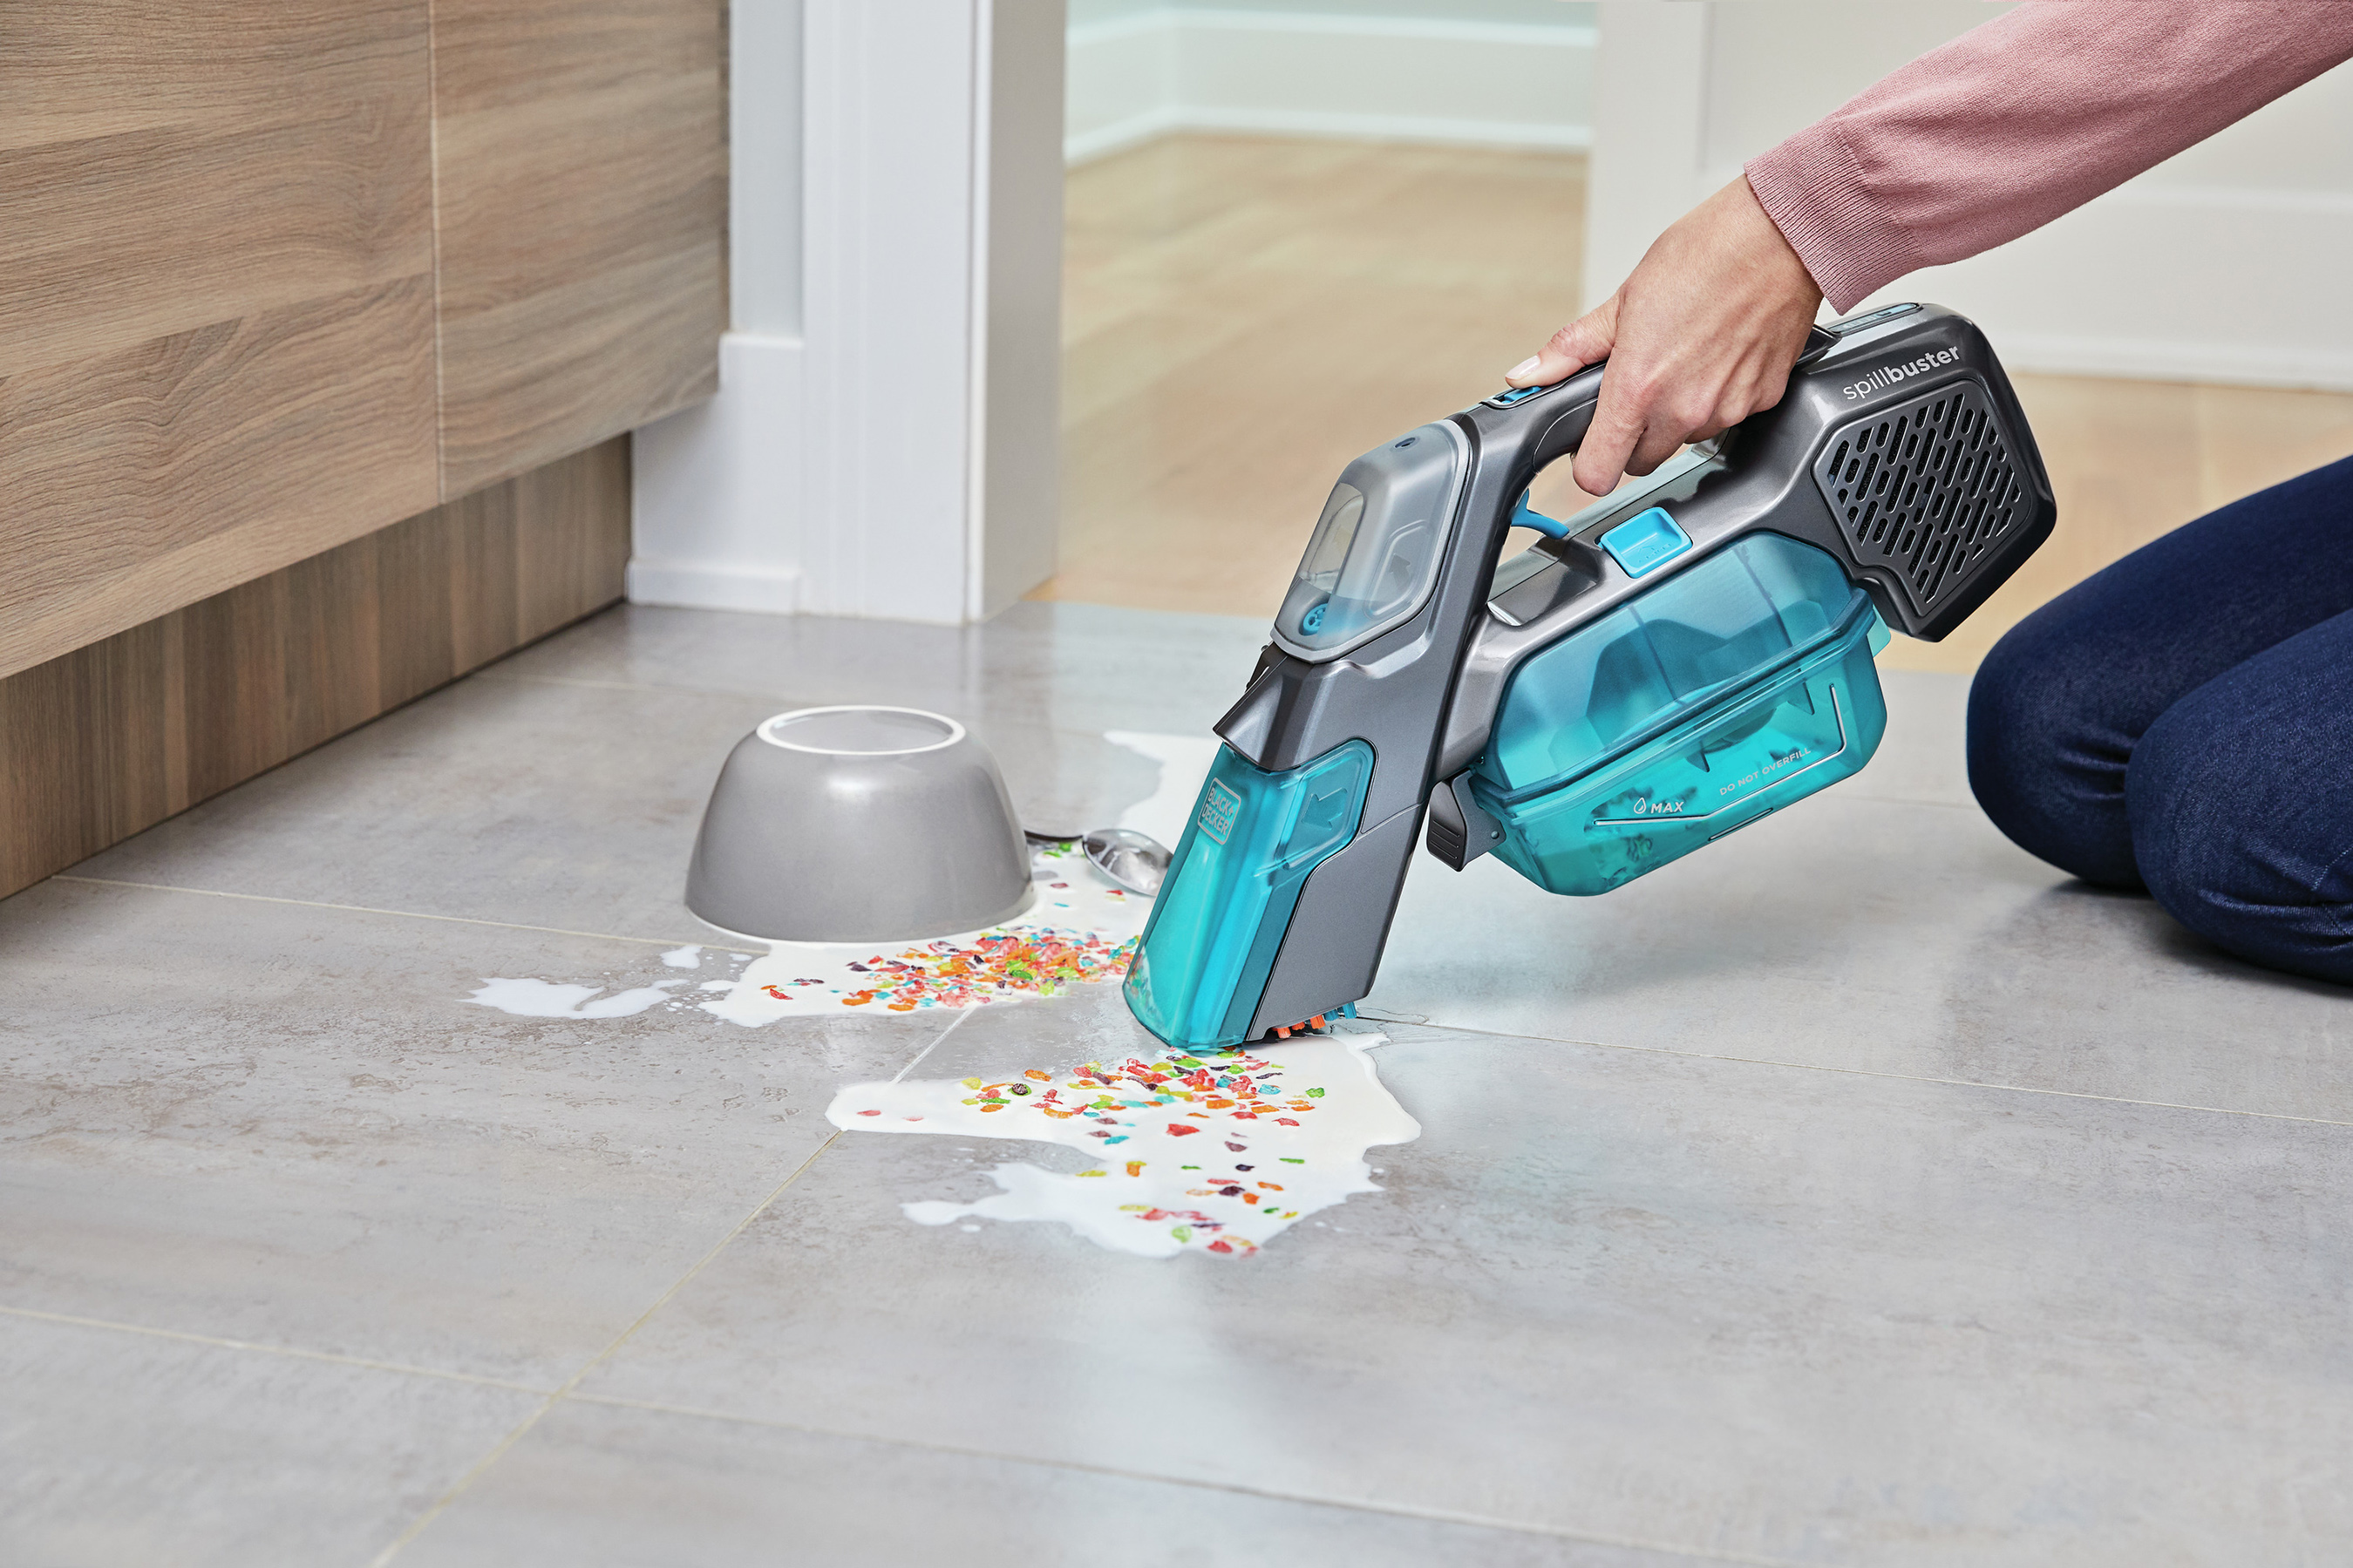 Picks up wet and chunky messes, with results in 3 seconds or less!*